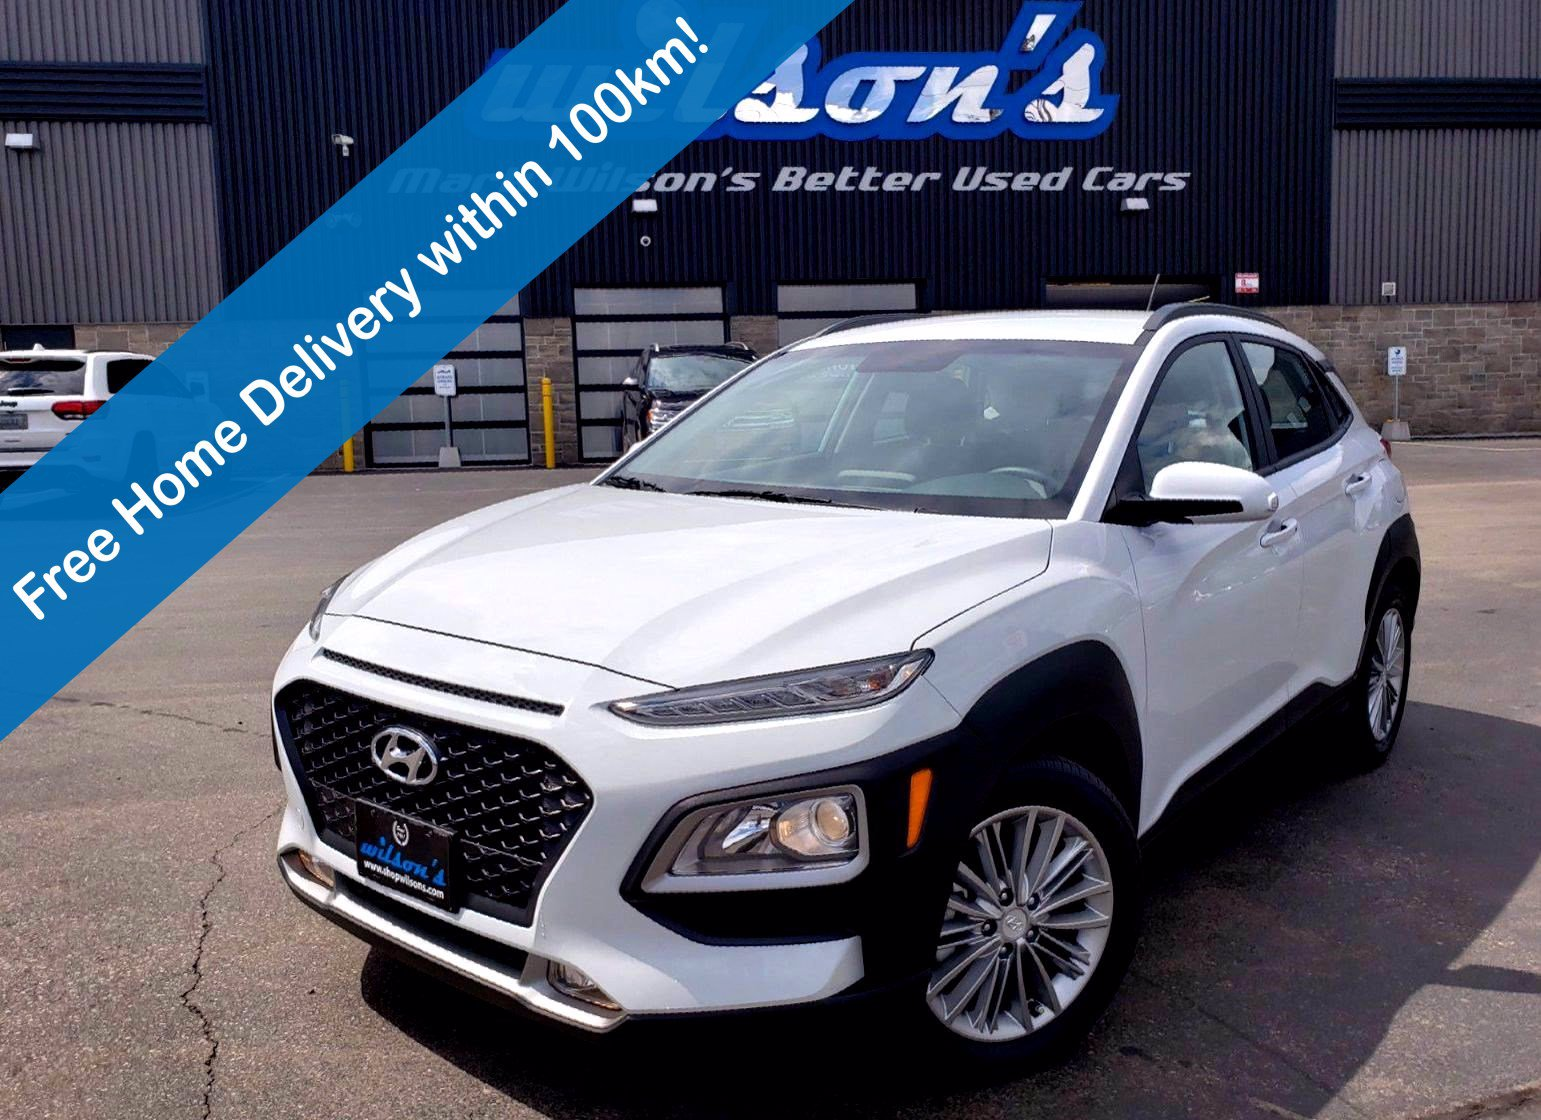 Certified Pre-Owned 2020 Hyundai Kona Preferred 2.0L AWD, Heated Steering, Blind Spot Monitor, Apple CarPlay + Android Auto, Heated Seats